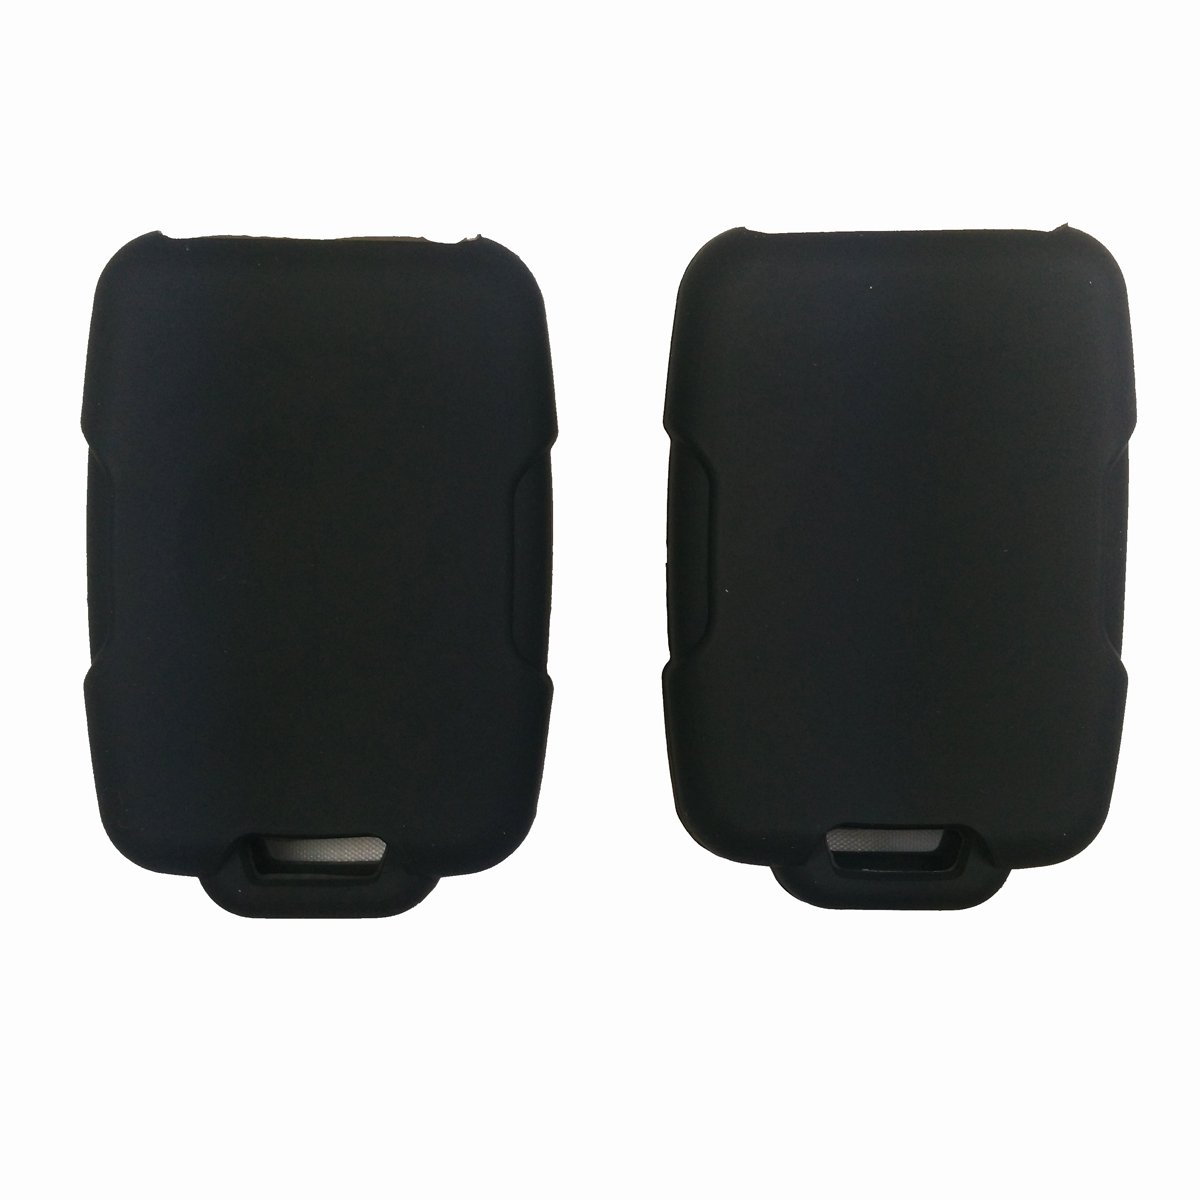 2Pcs Coolbestda Silicone Key Cover Case Keyless Protector Fob Remote Wallet Jacket for GMC Yukon Sierra 1500 Chevrolet Suburban Tahoe 5 Buttons Smart Key 4347665116